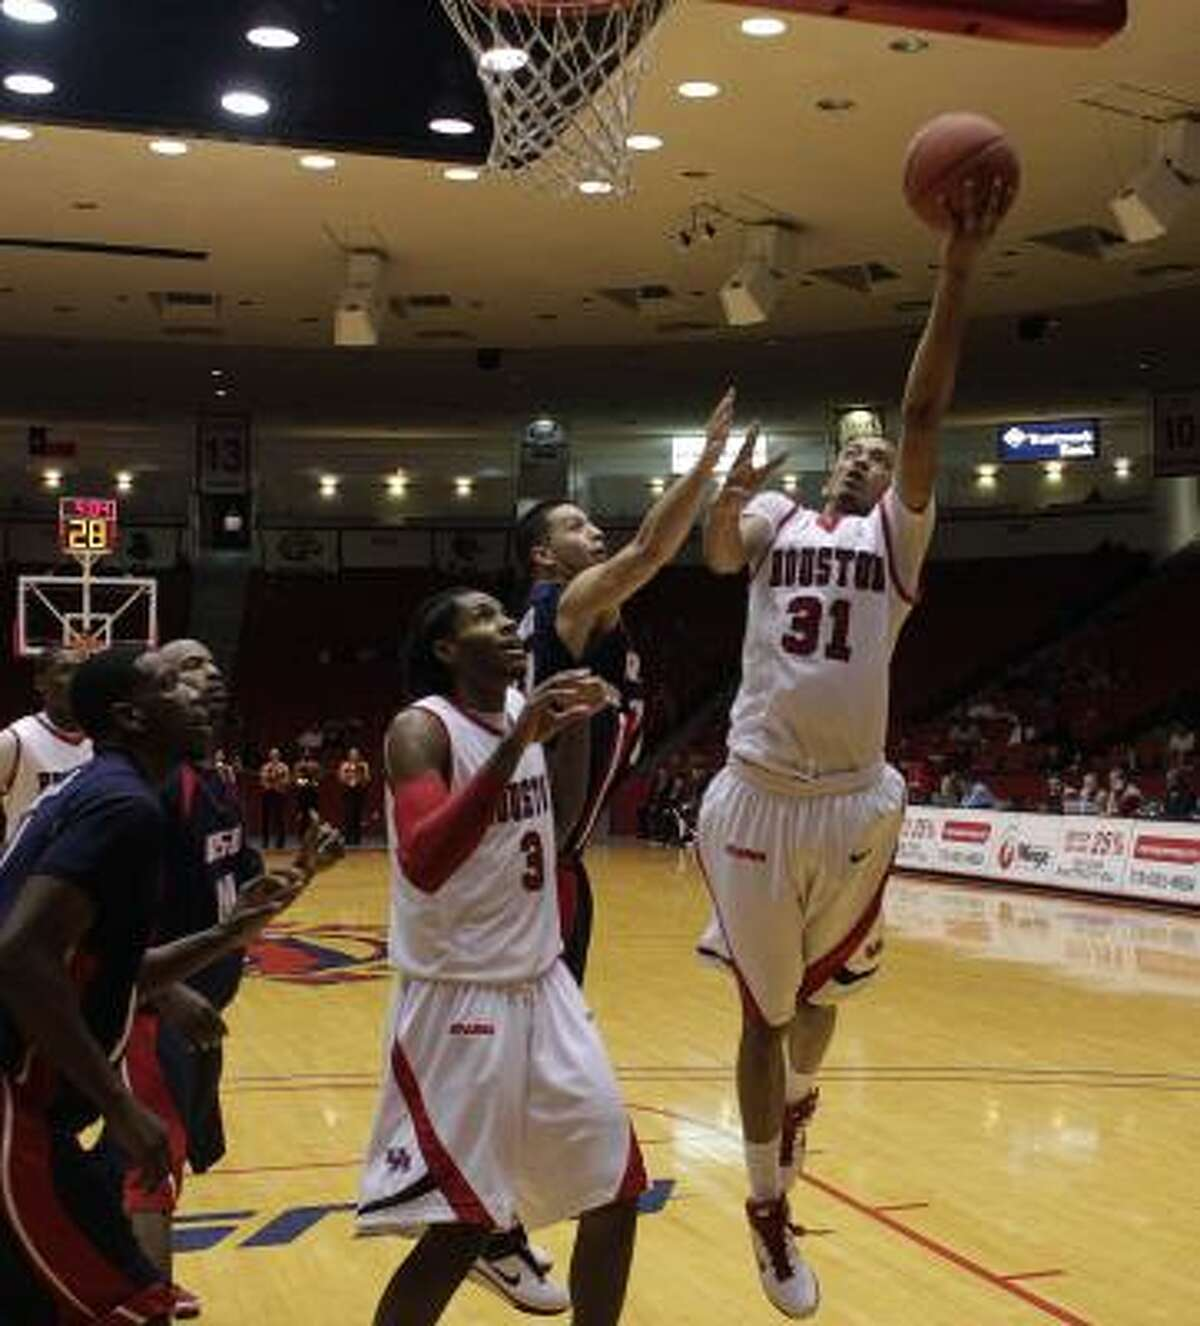 UH guard Adam Brown (31) drives to the basket in the second half. He finished with 13 points.